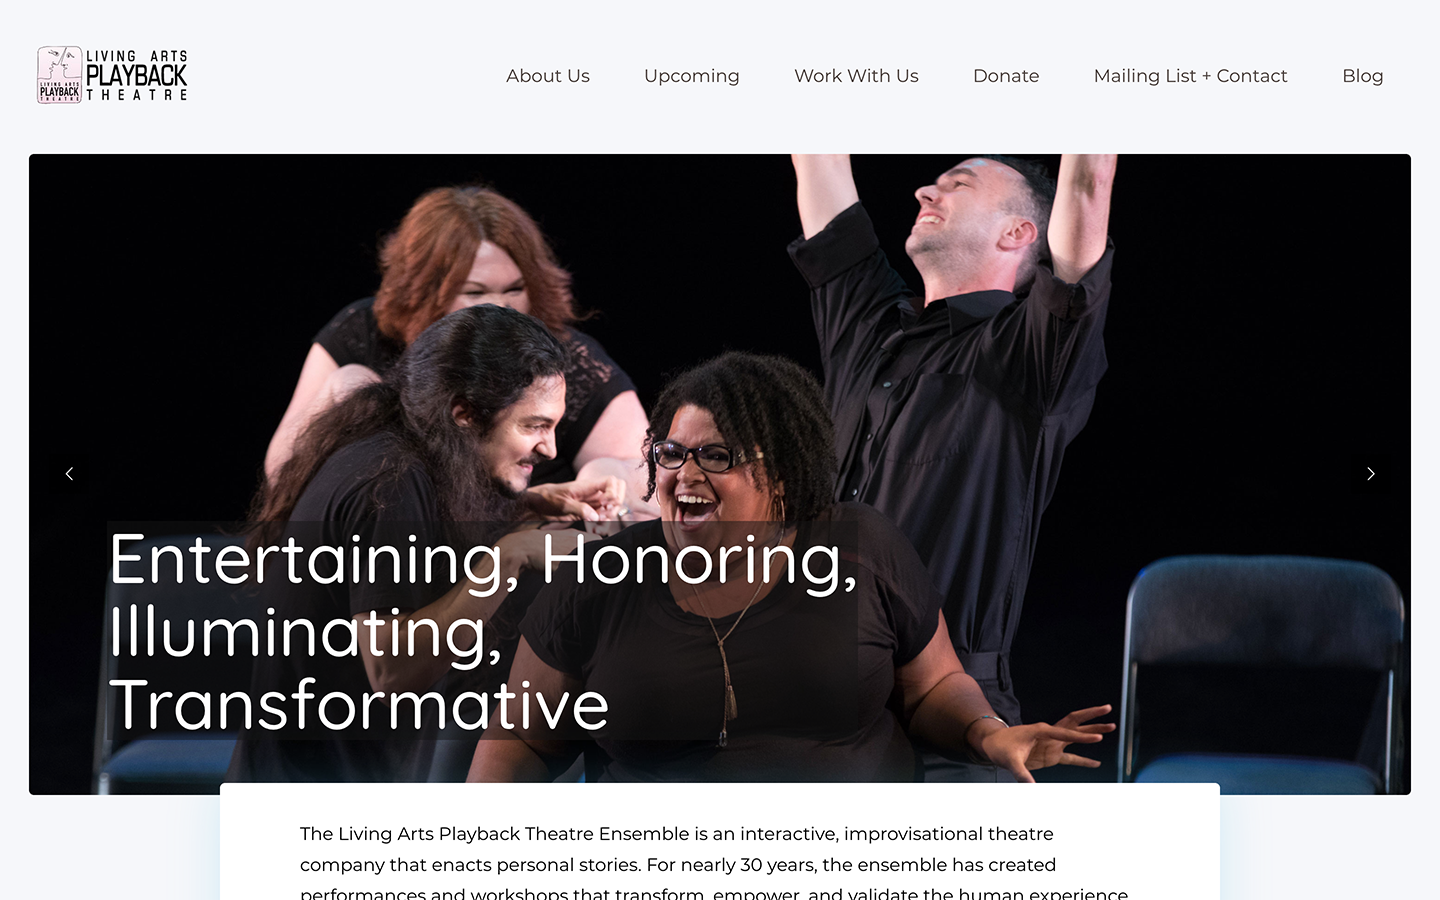 hero image and caption for living arts playback theatre ensemble website